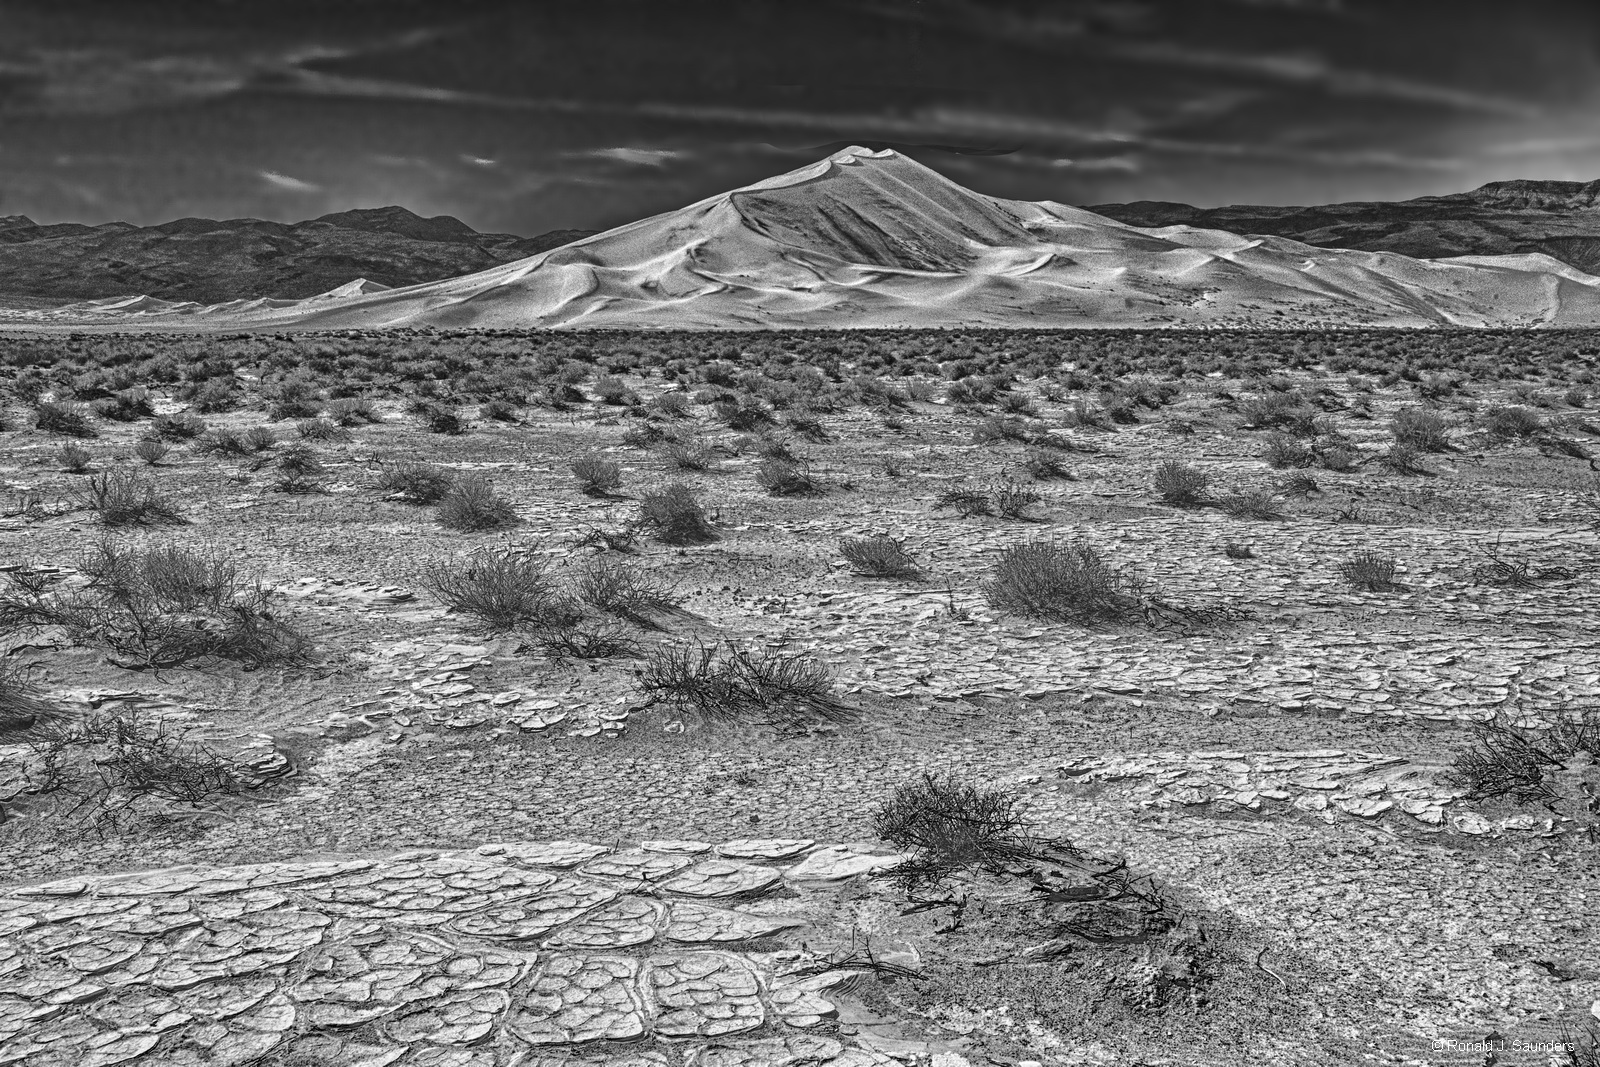 Death Valley, dunes, sand, meringue, california, black,ronal, saunders, ronald j saunders, ron, landscape, desert, nevada, photo